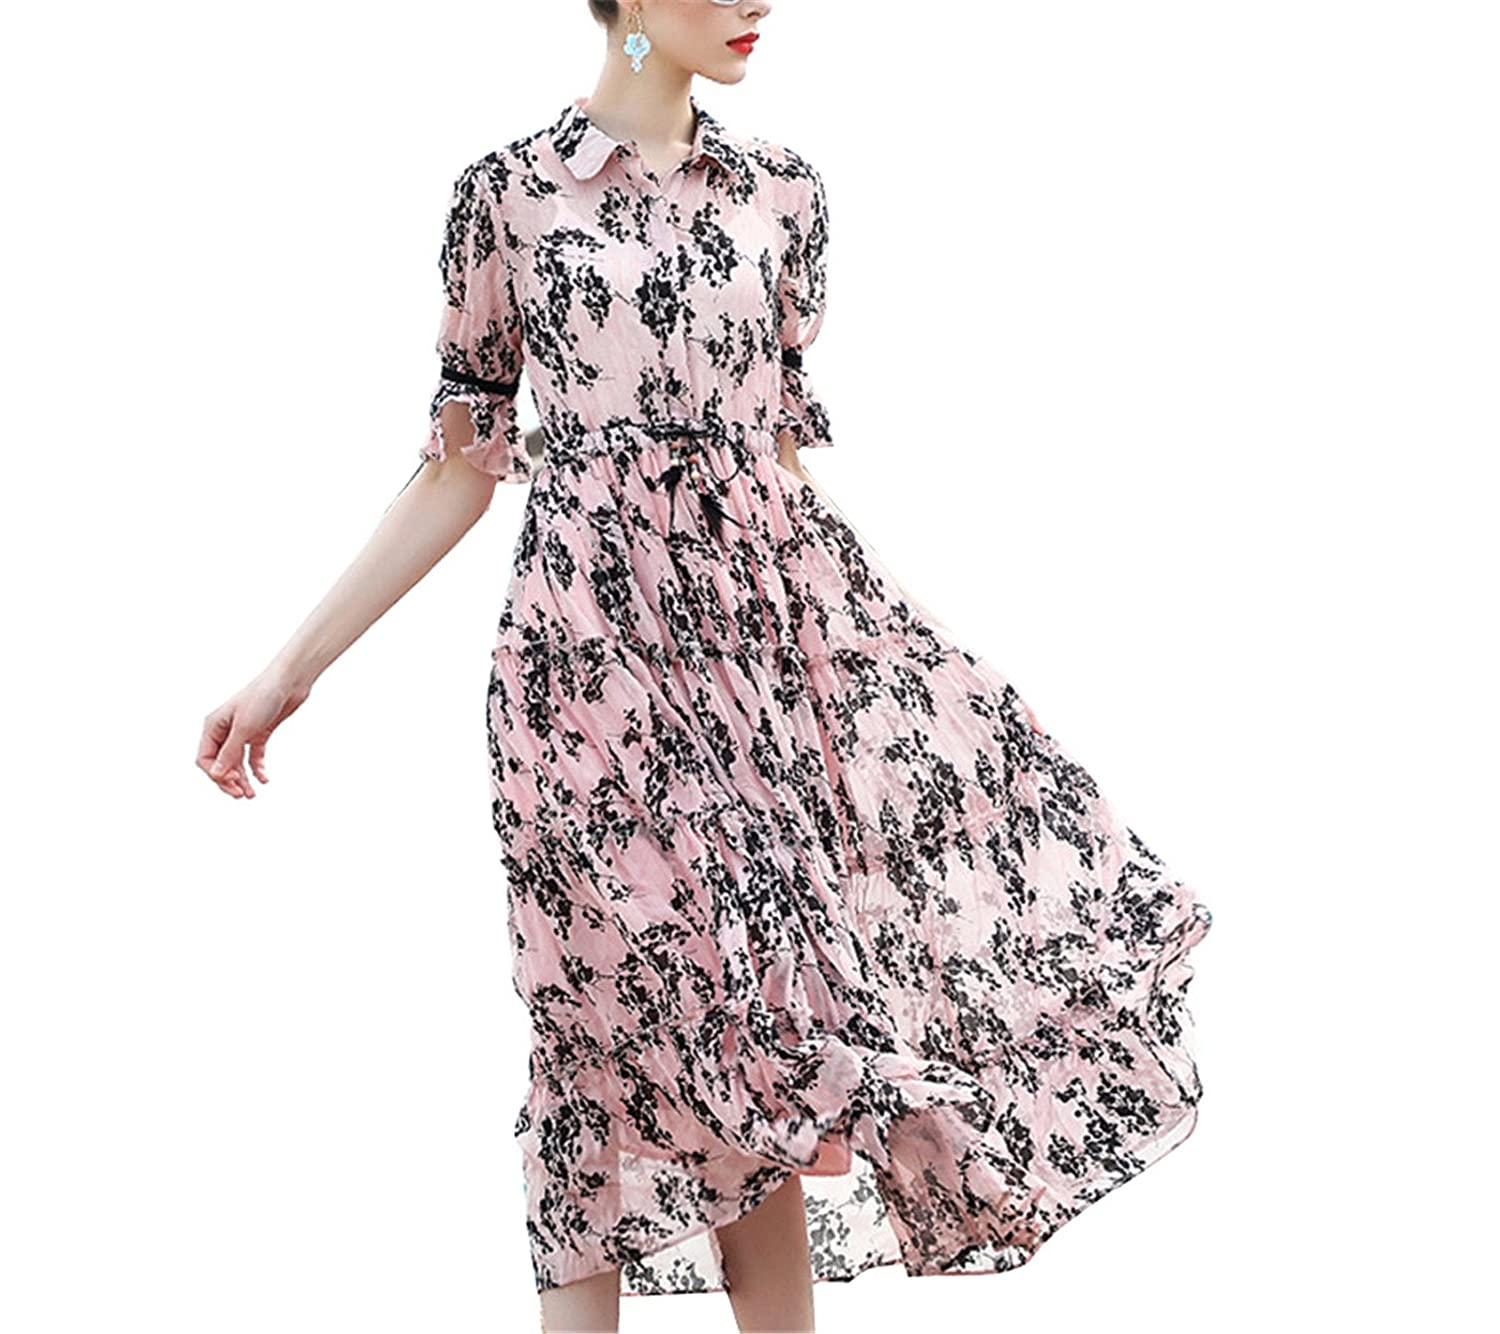 Amazon.com: Eloise Isabel Fashion boho chic long bEANh dress colarinho turn-down manga flare floral impresso túnica dress: Clothing